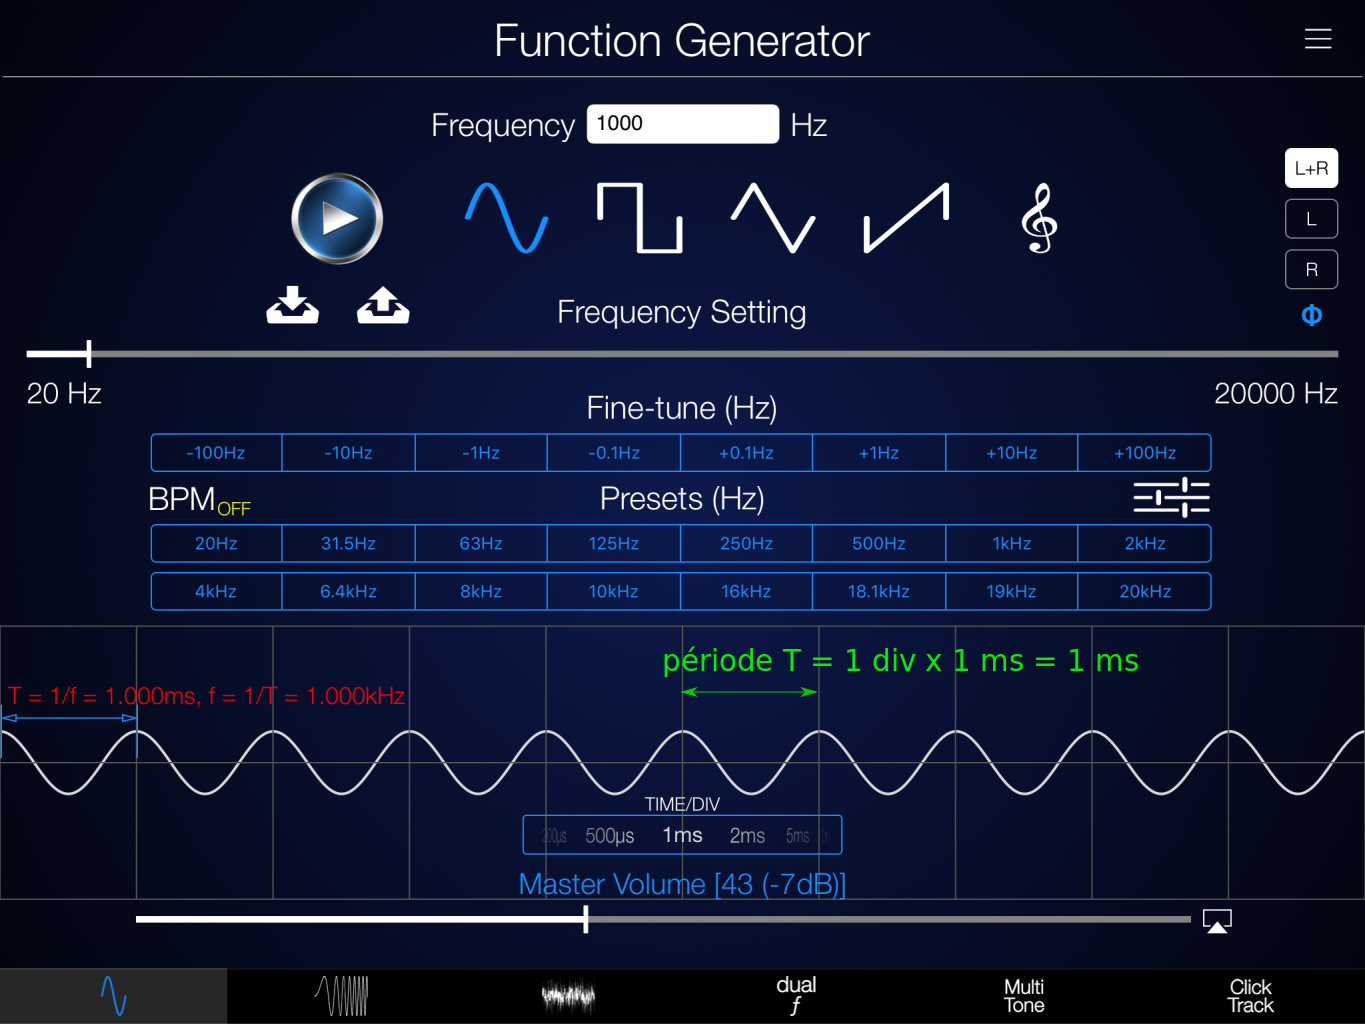 FunctionGenerator1000Hz.png